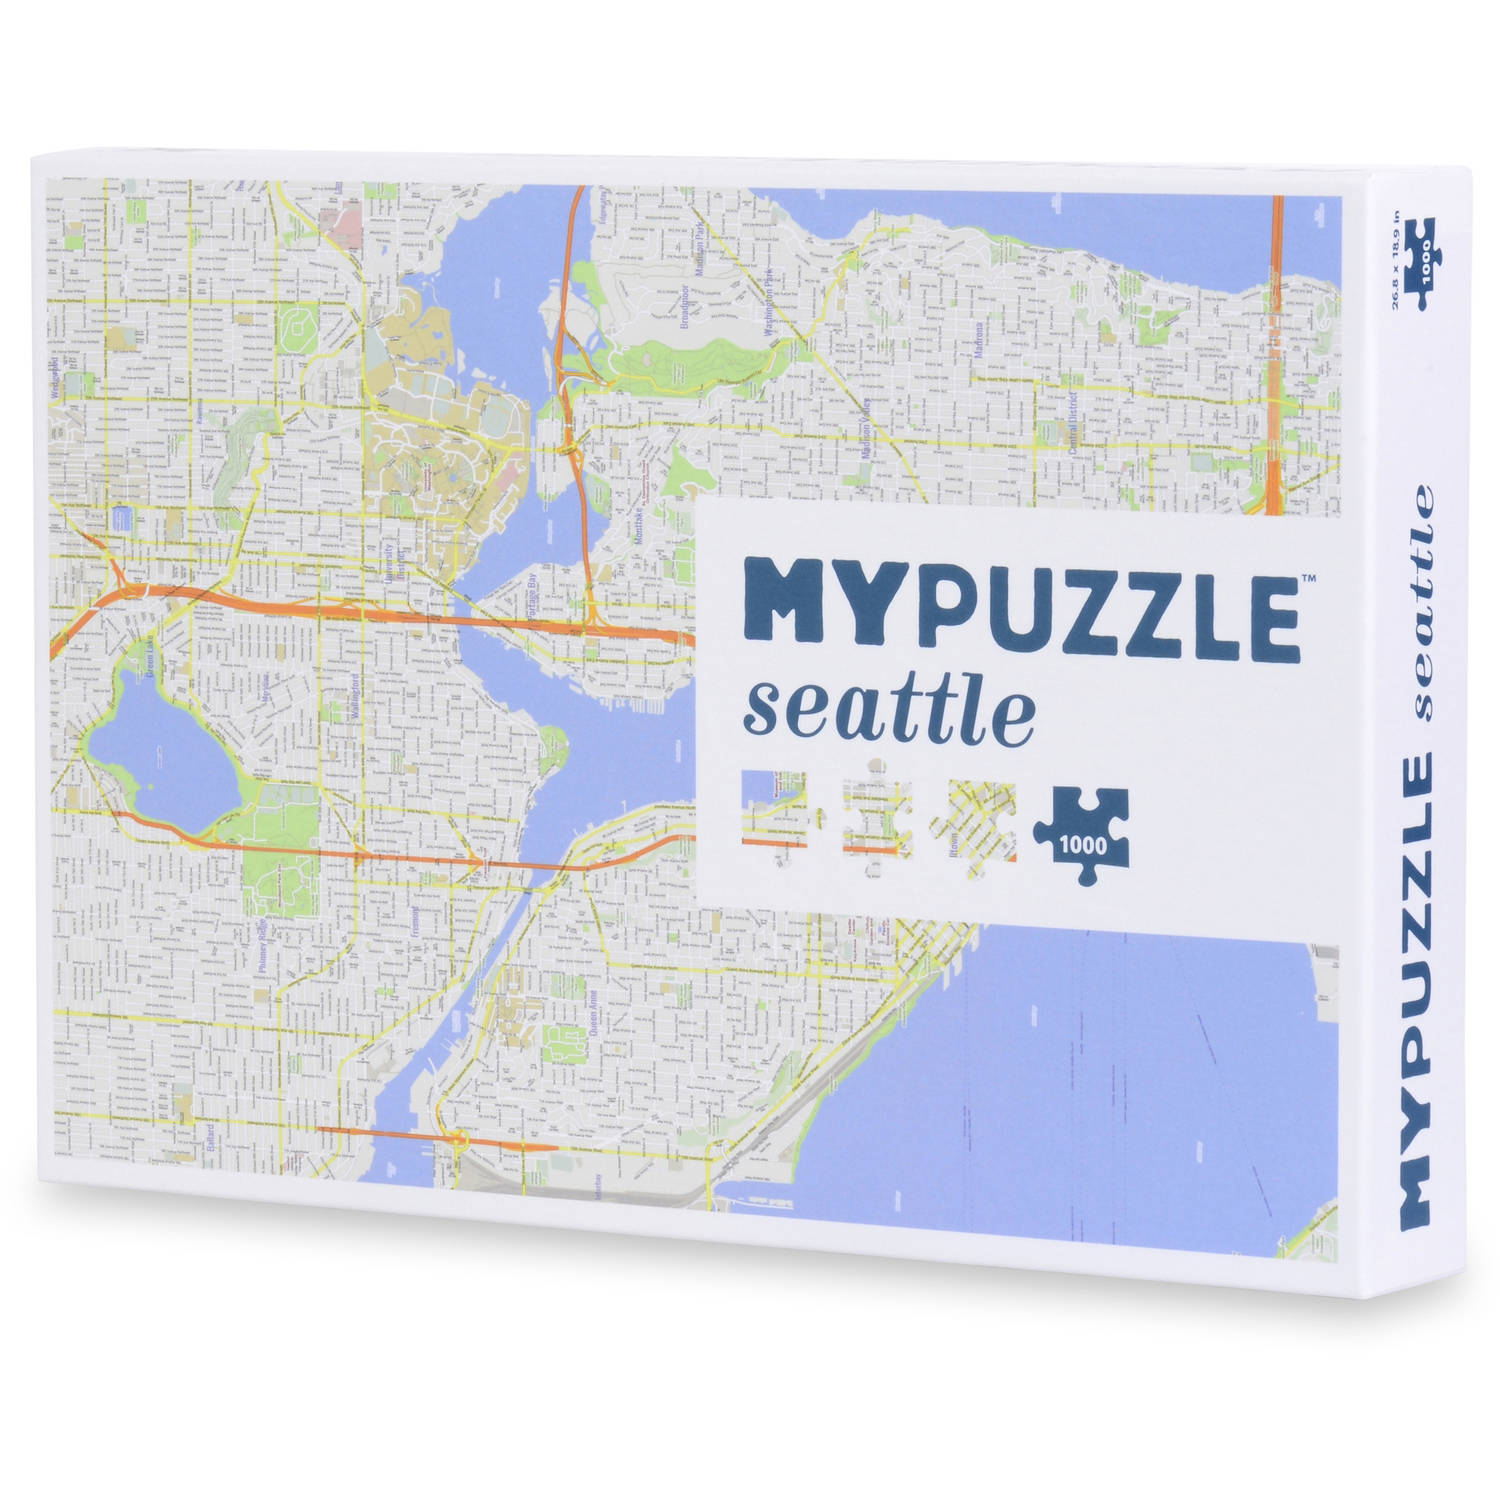 MyPuzzle Seattle